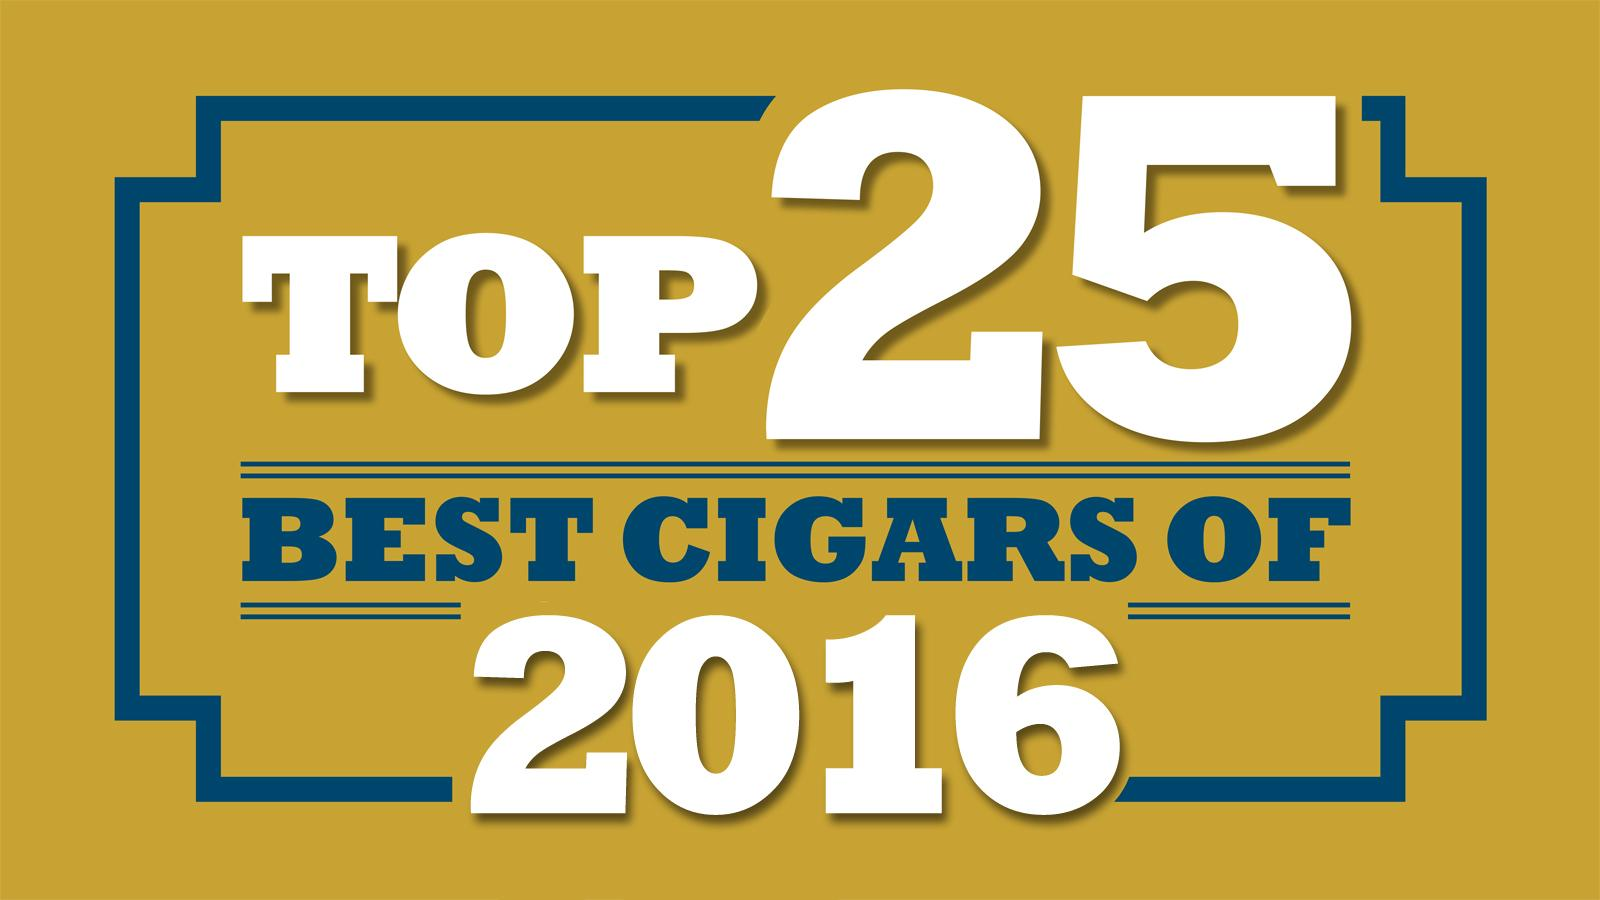 Top 25 Cigars of 2016 Coming Soon